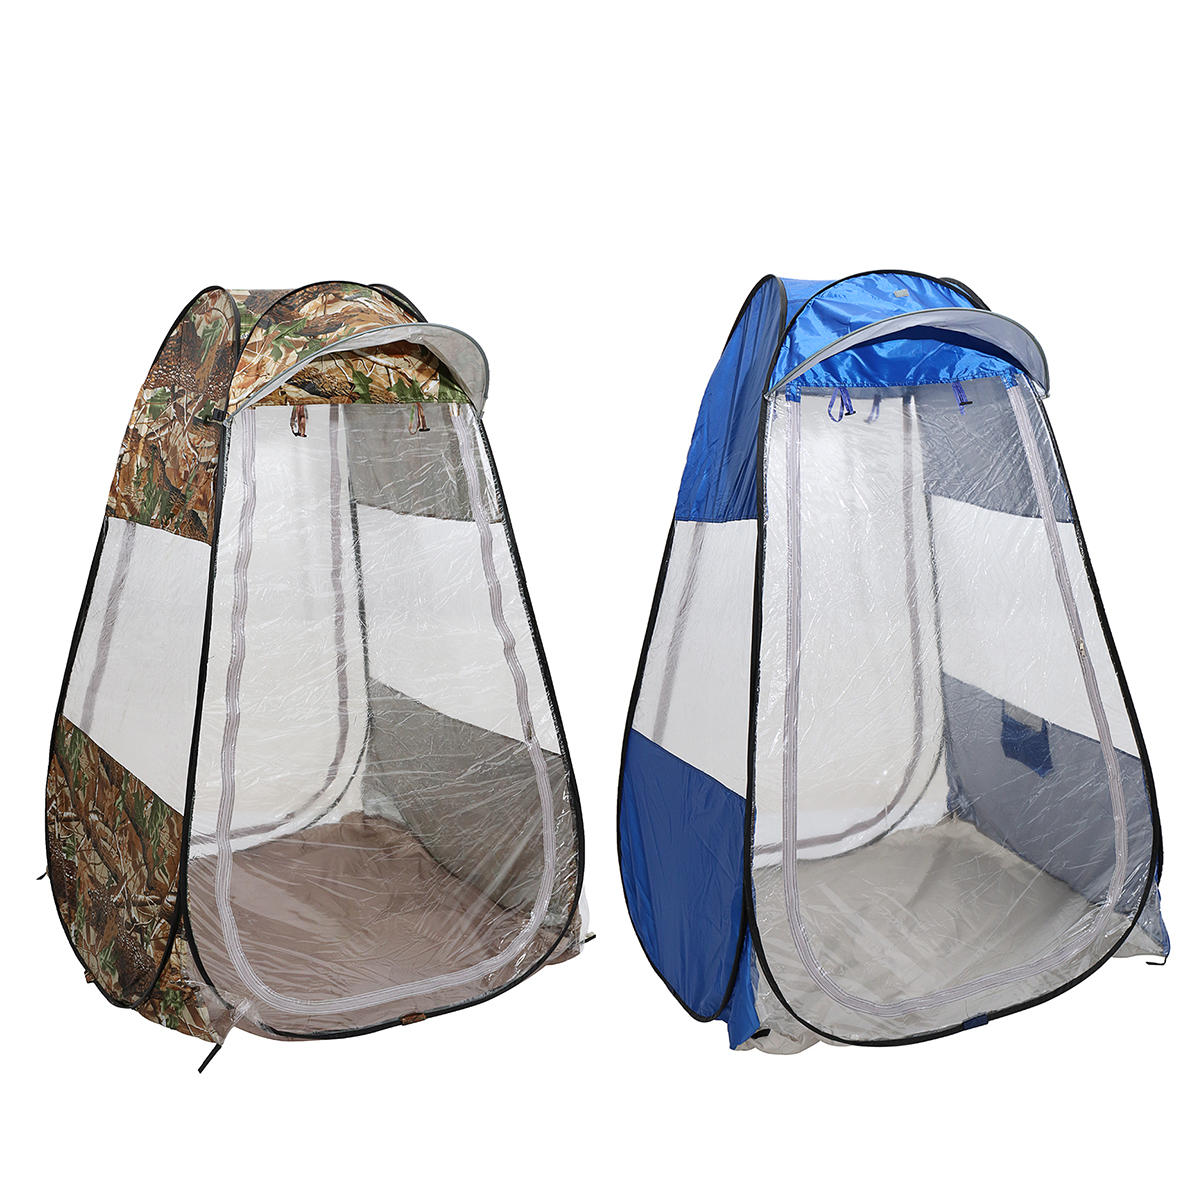 Outdoor Camping Single Pop-up Tent Waterproof Anti-UV Canopy Sunshade Shelter фото